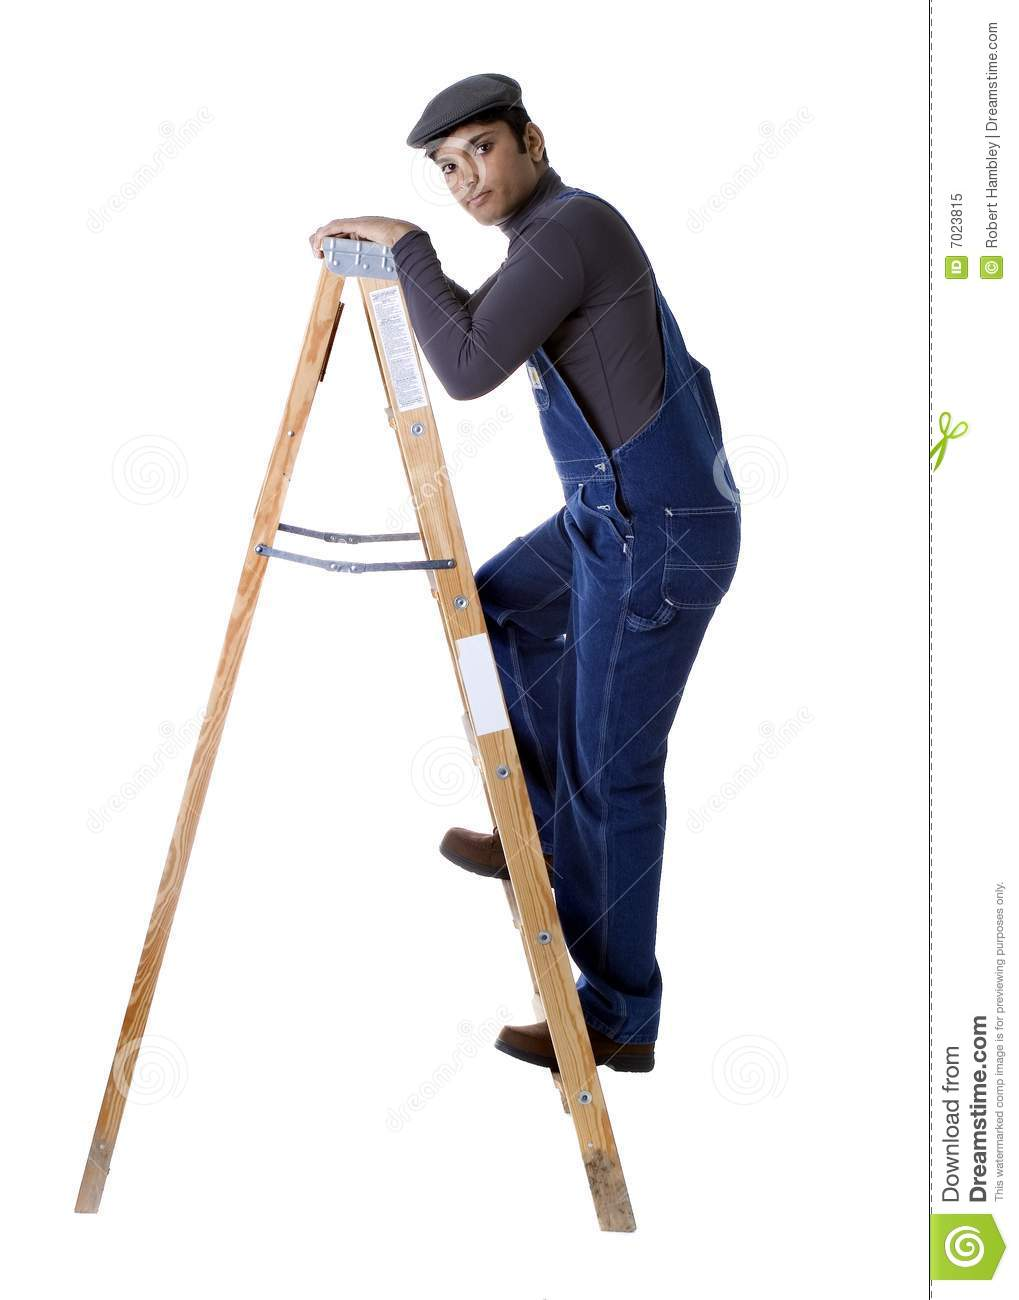 Worker Climbing Step Ladder Stock Image - Image of white, flat: 7023815 for Worker Climbing Ladder  45gtk